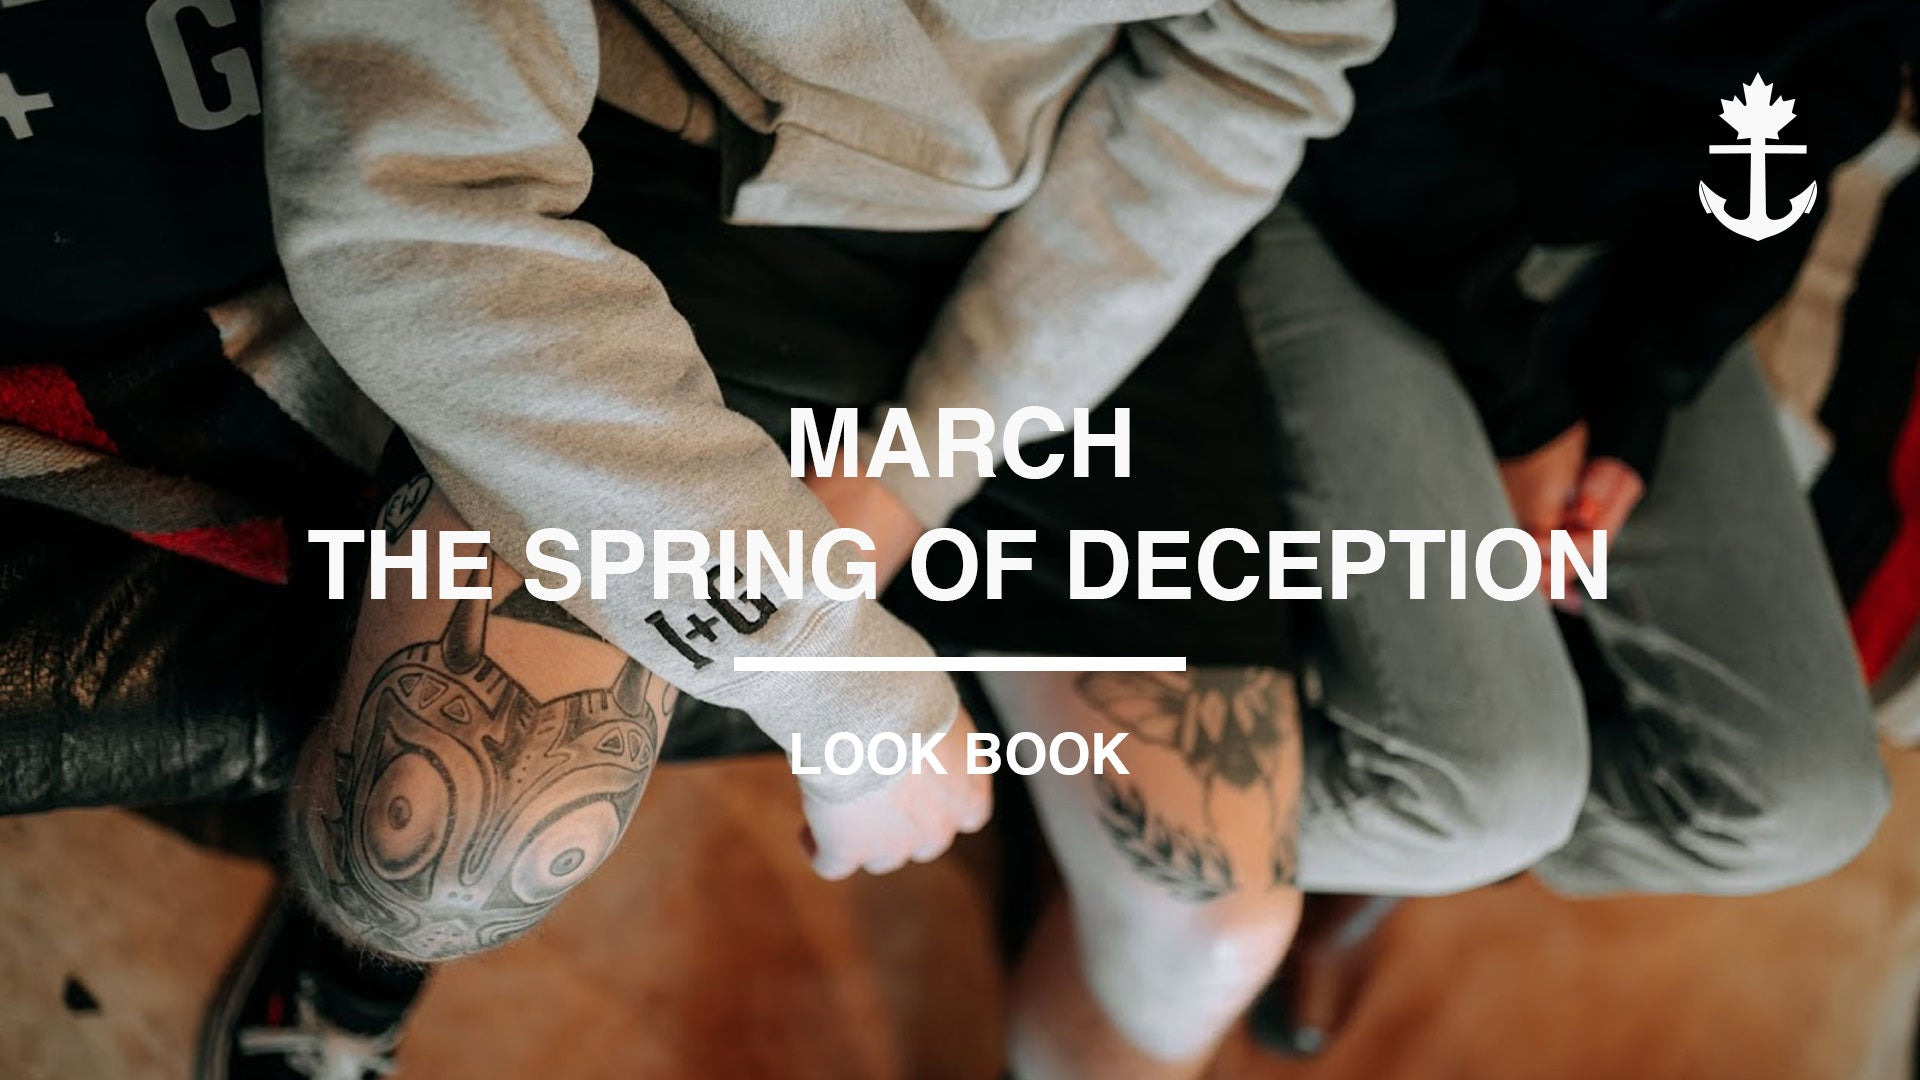 March: The Spring of Deception Look Book Blog